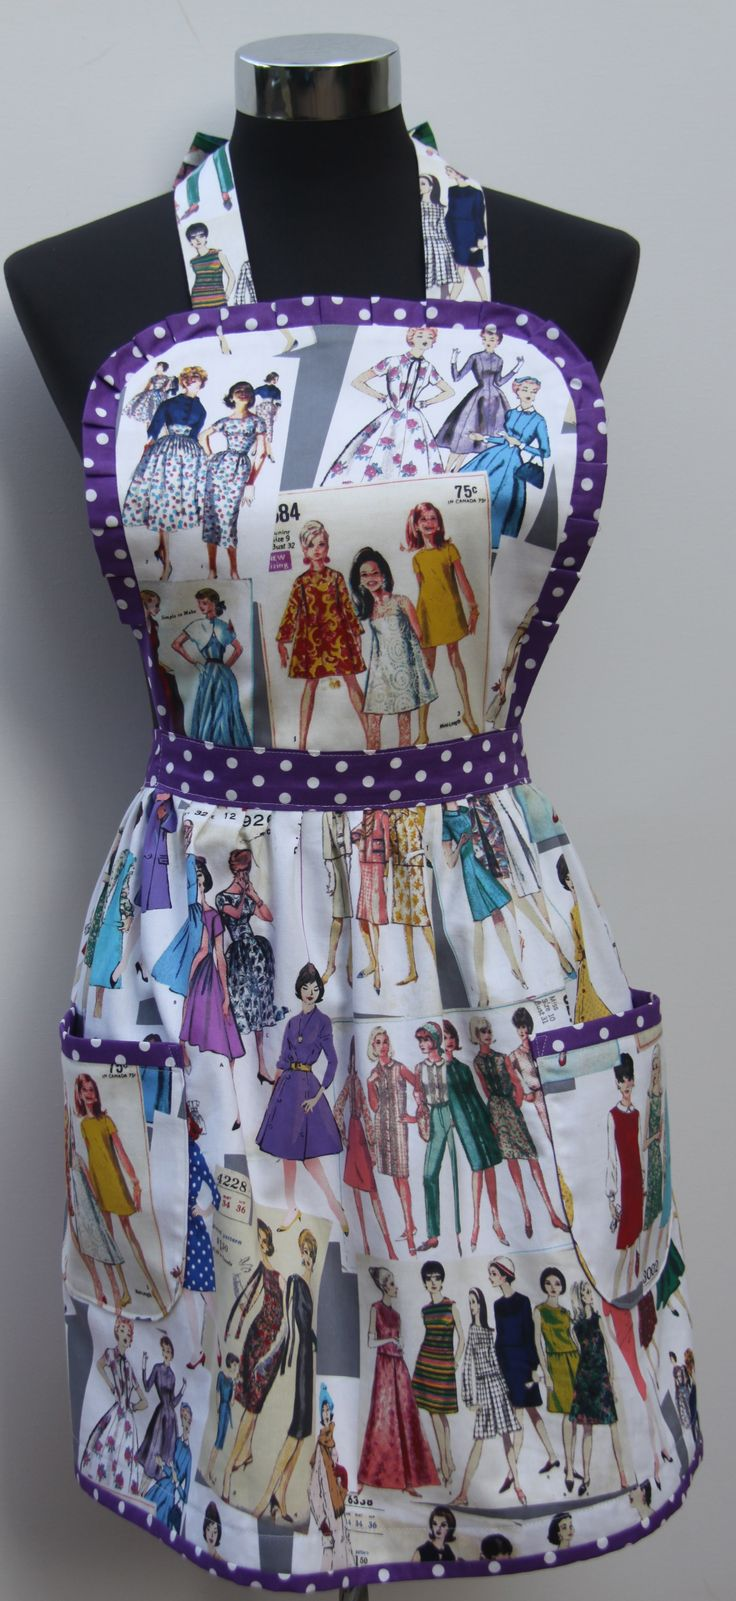 """Colour my Sixties World""   All the fashions of the 1960's in one apron. The double sided Bib has fine spot edge with pleated detail on the curves. The spotted piping continues around the waist, pockets and hemline. The pockets are fully lined in the spotted fabric. Ties around the neck and waistline.   Fabric sold out.  Style available using any fabric in the range. Handmade in Australia.   e: alollycreation@gmail.com"